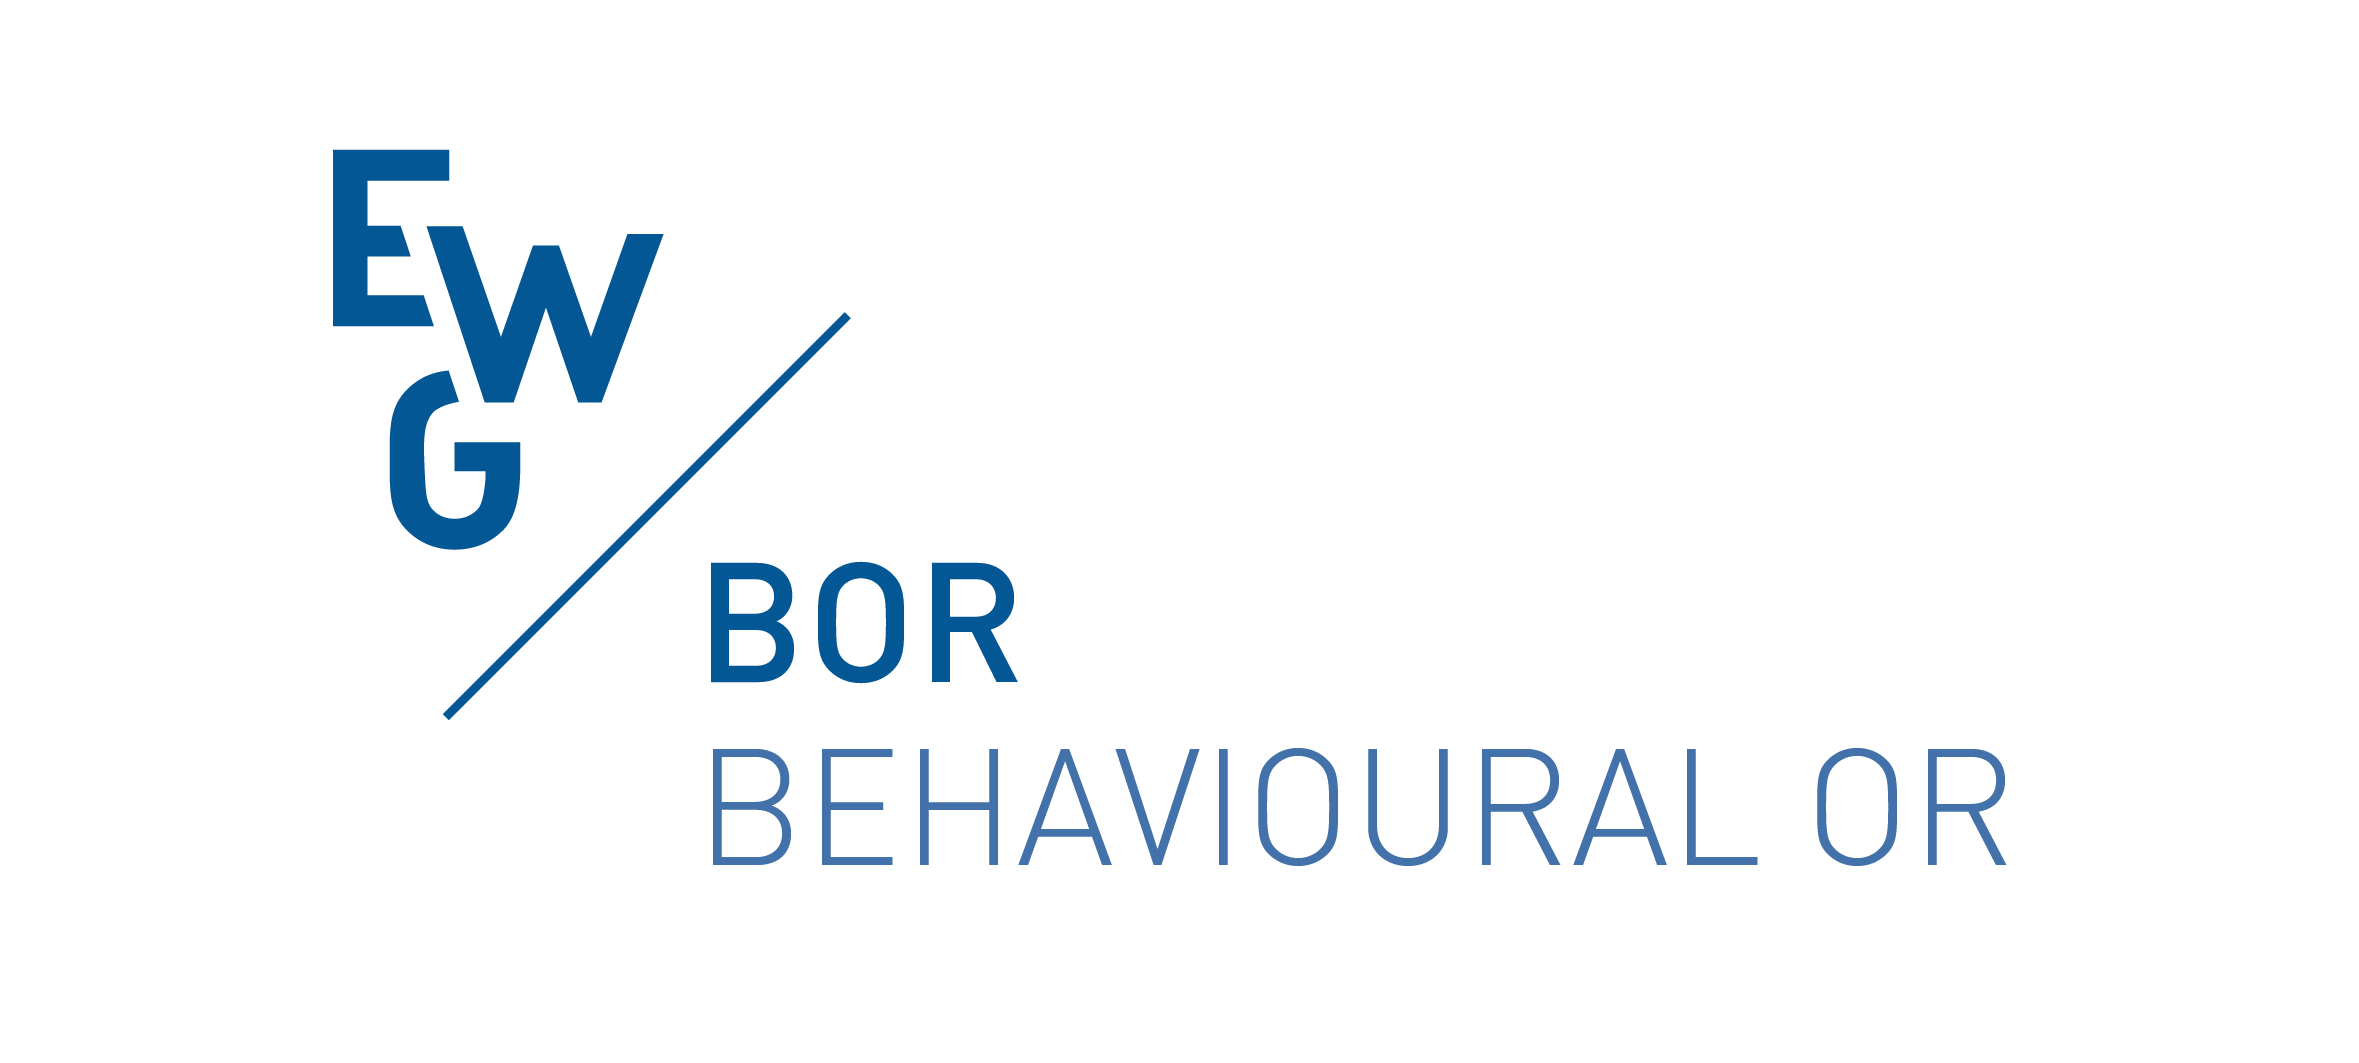 EURO working group on Behavioural OR